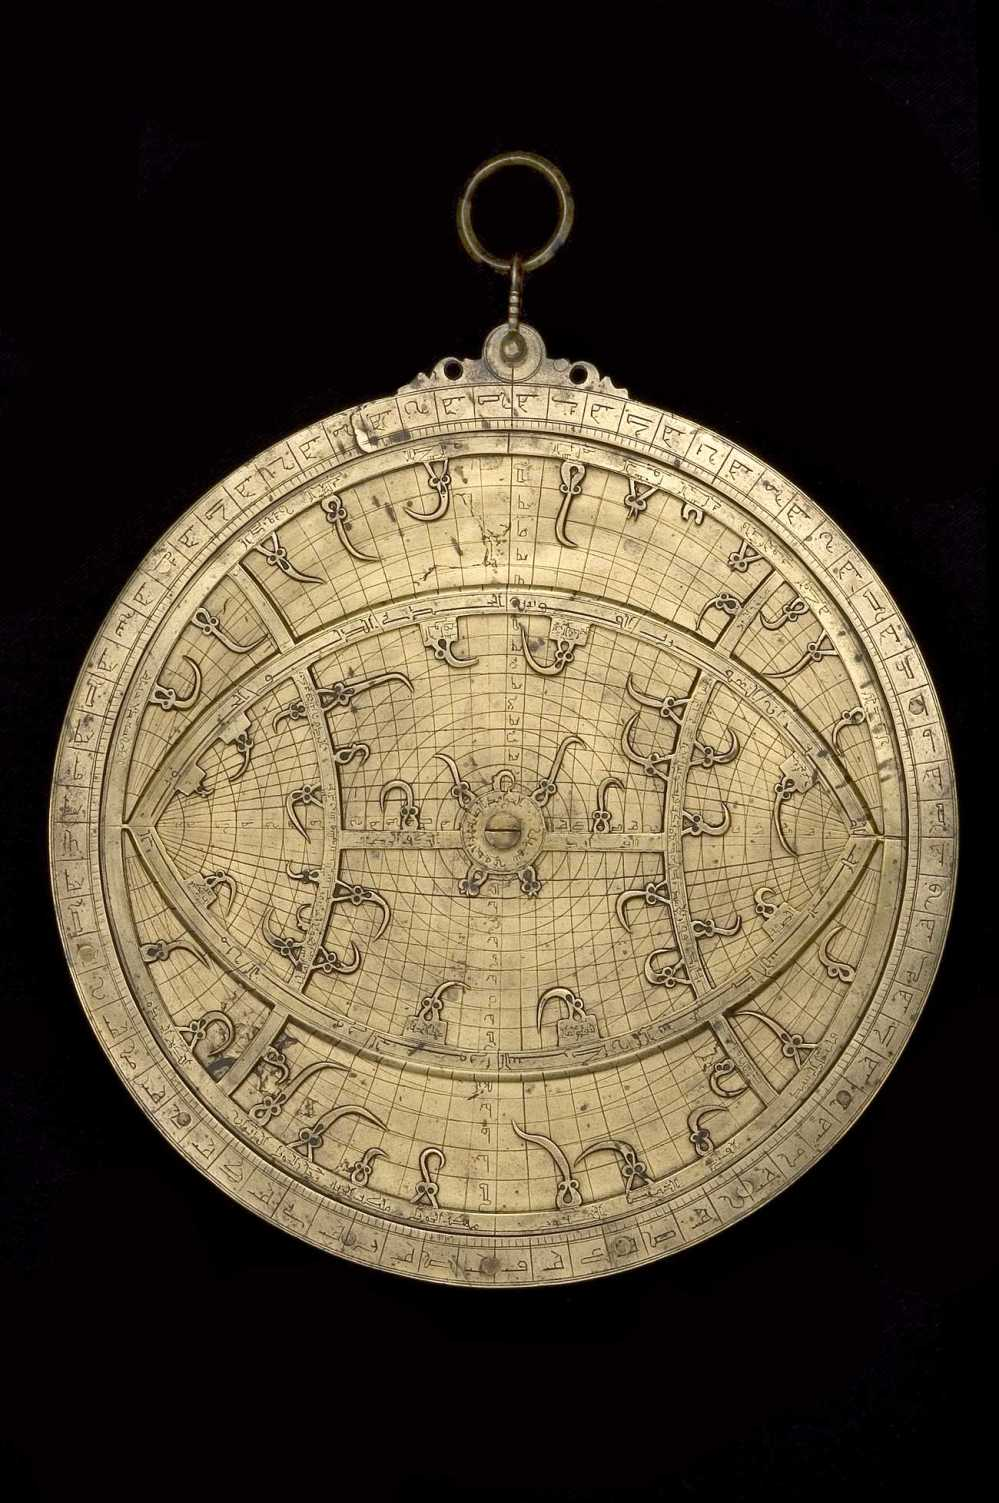 preview image for Astrolabe with Universal Lamina, by `Ali ibn Ibrahim al-Harrar, Taza, Morocco, 1327/8